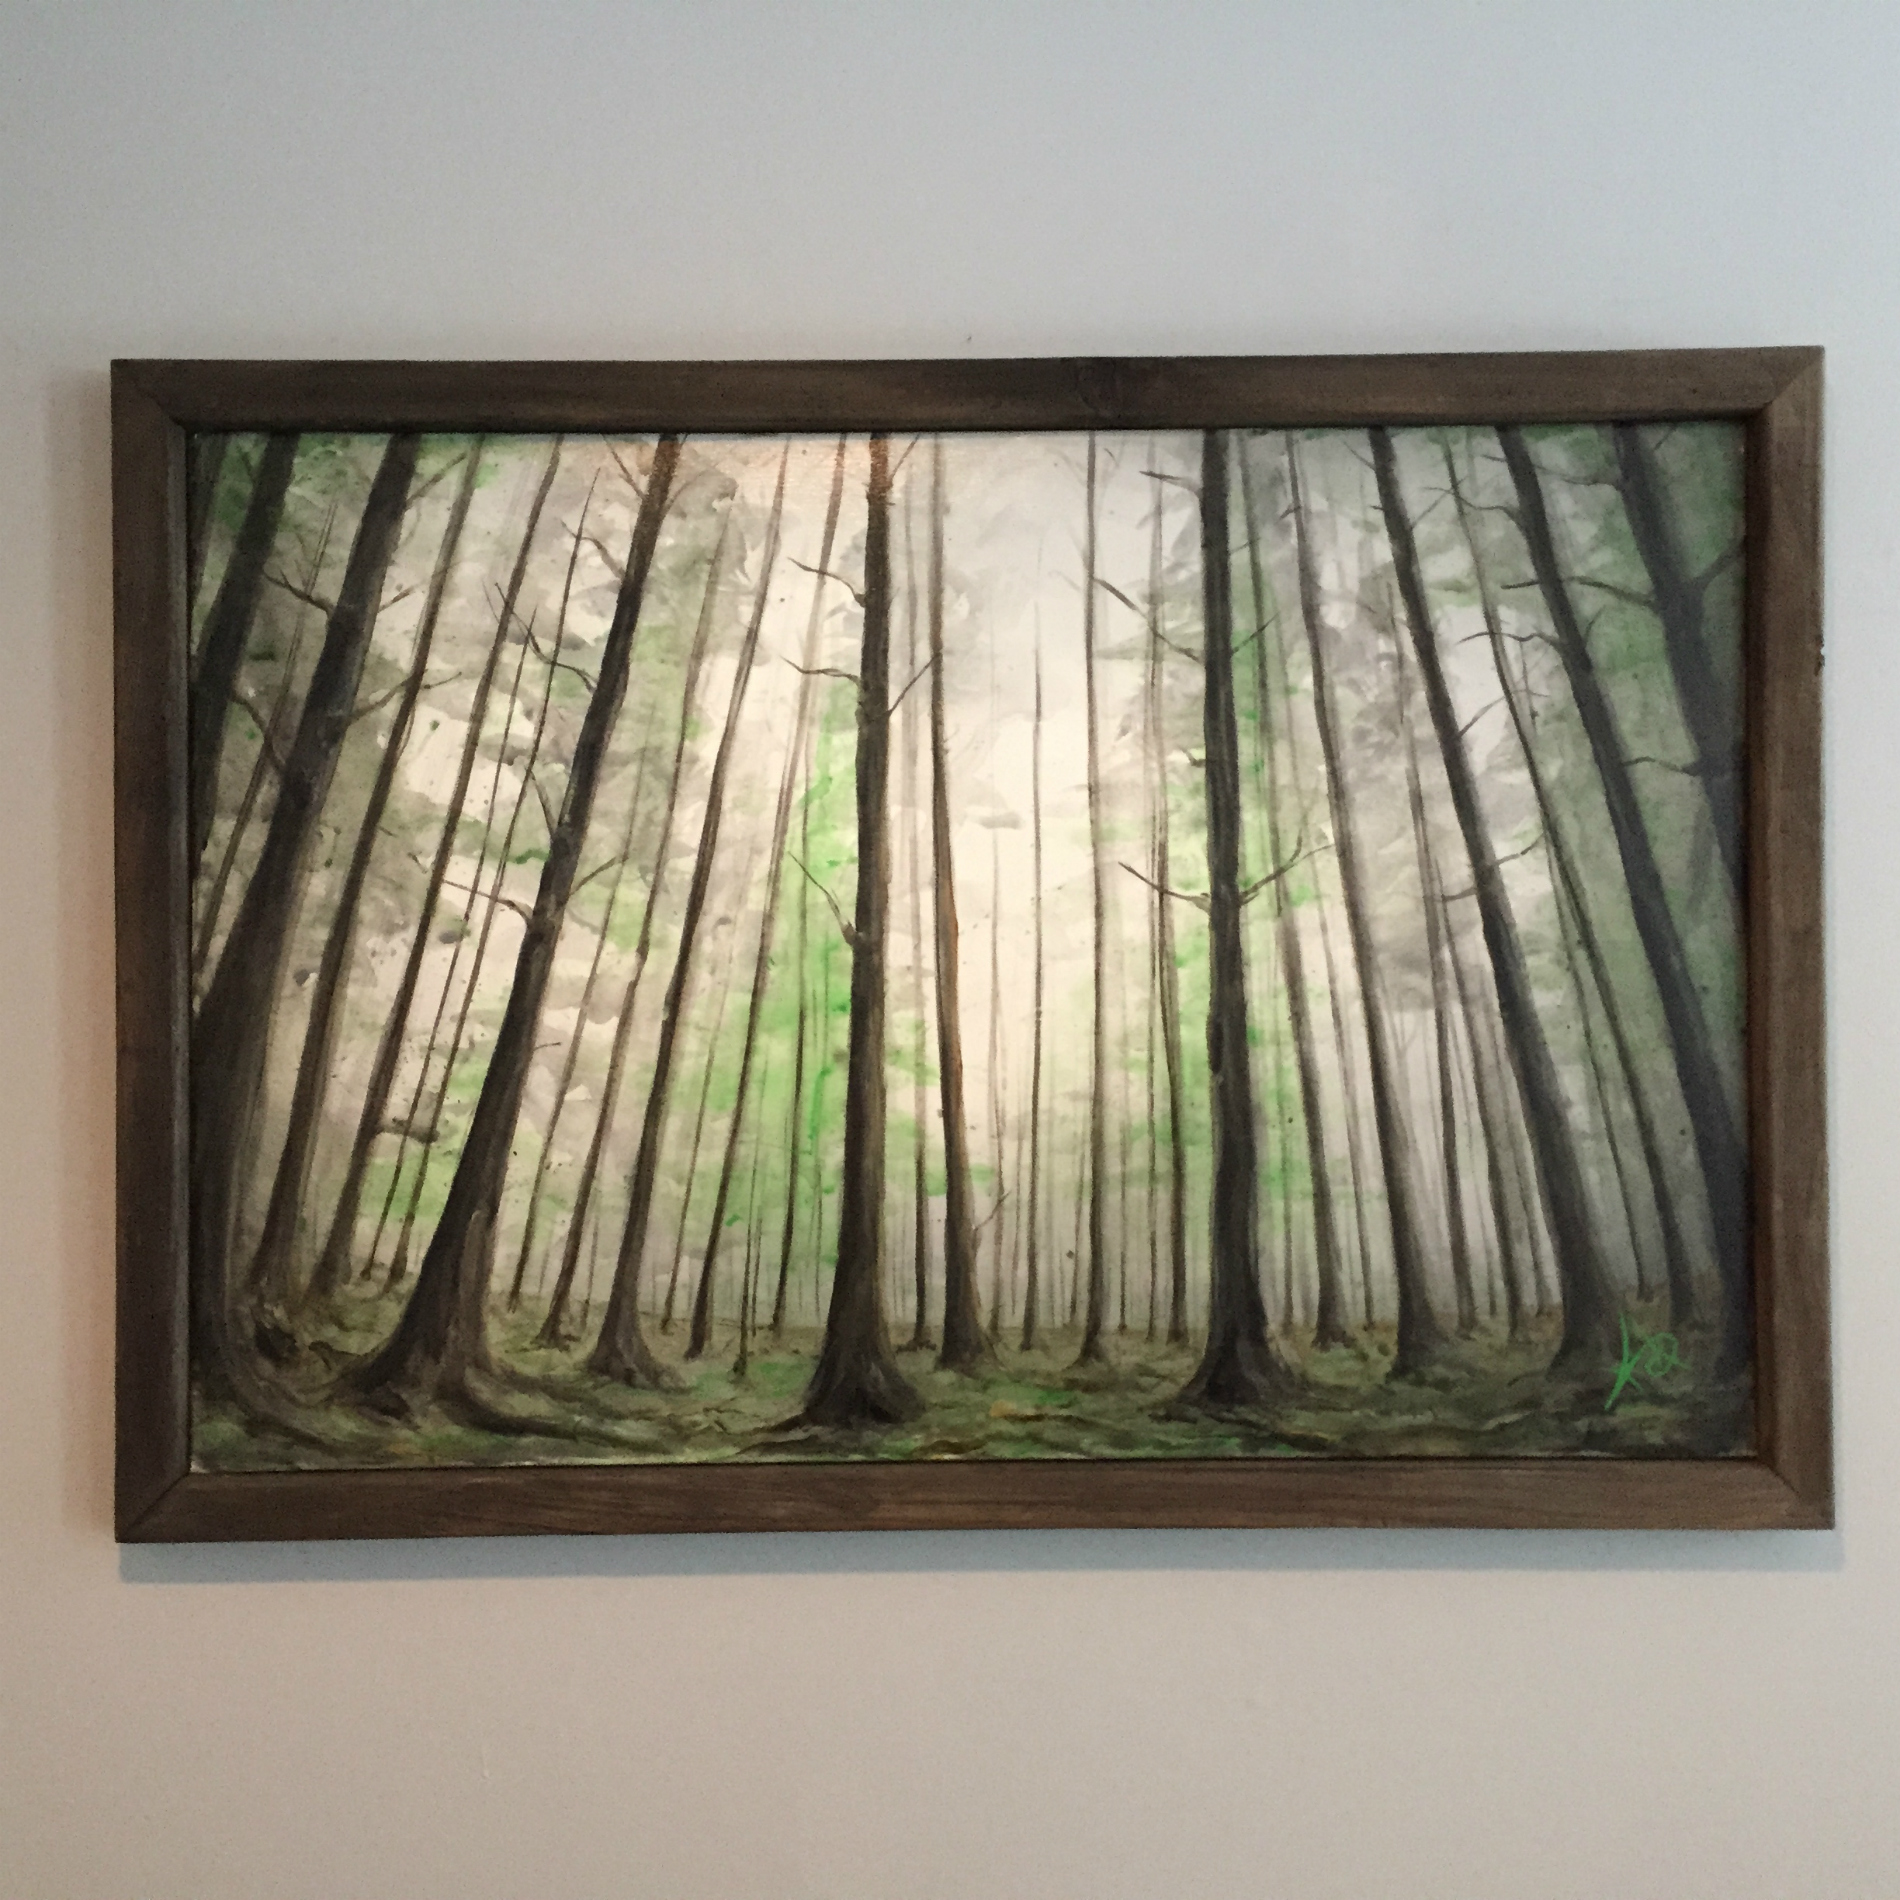 Silent in the Trees_39x27_$1500.JPG